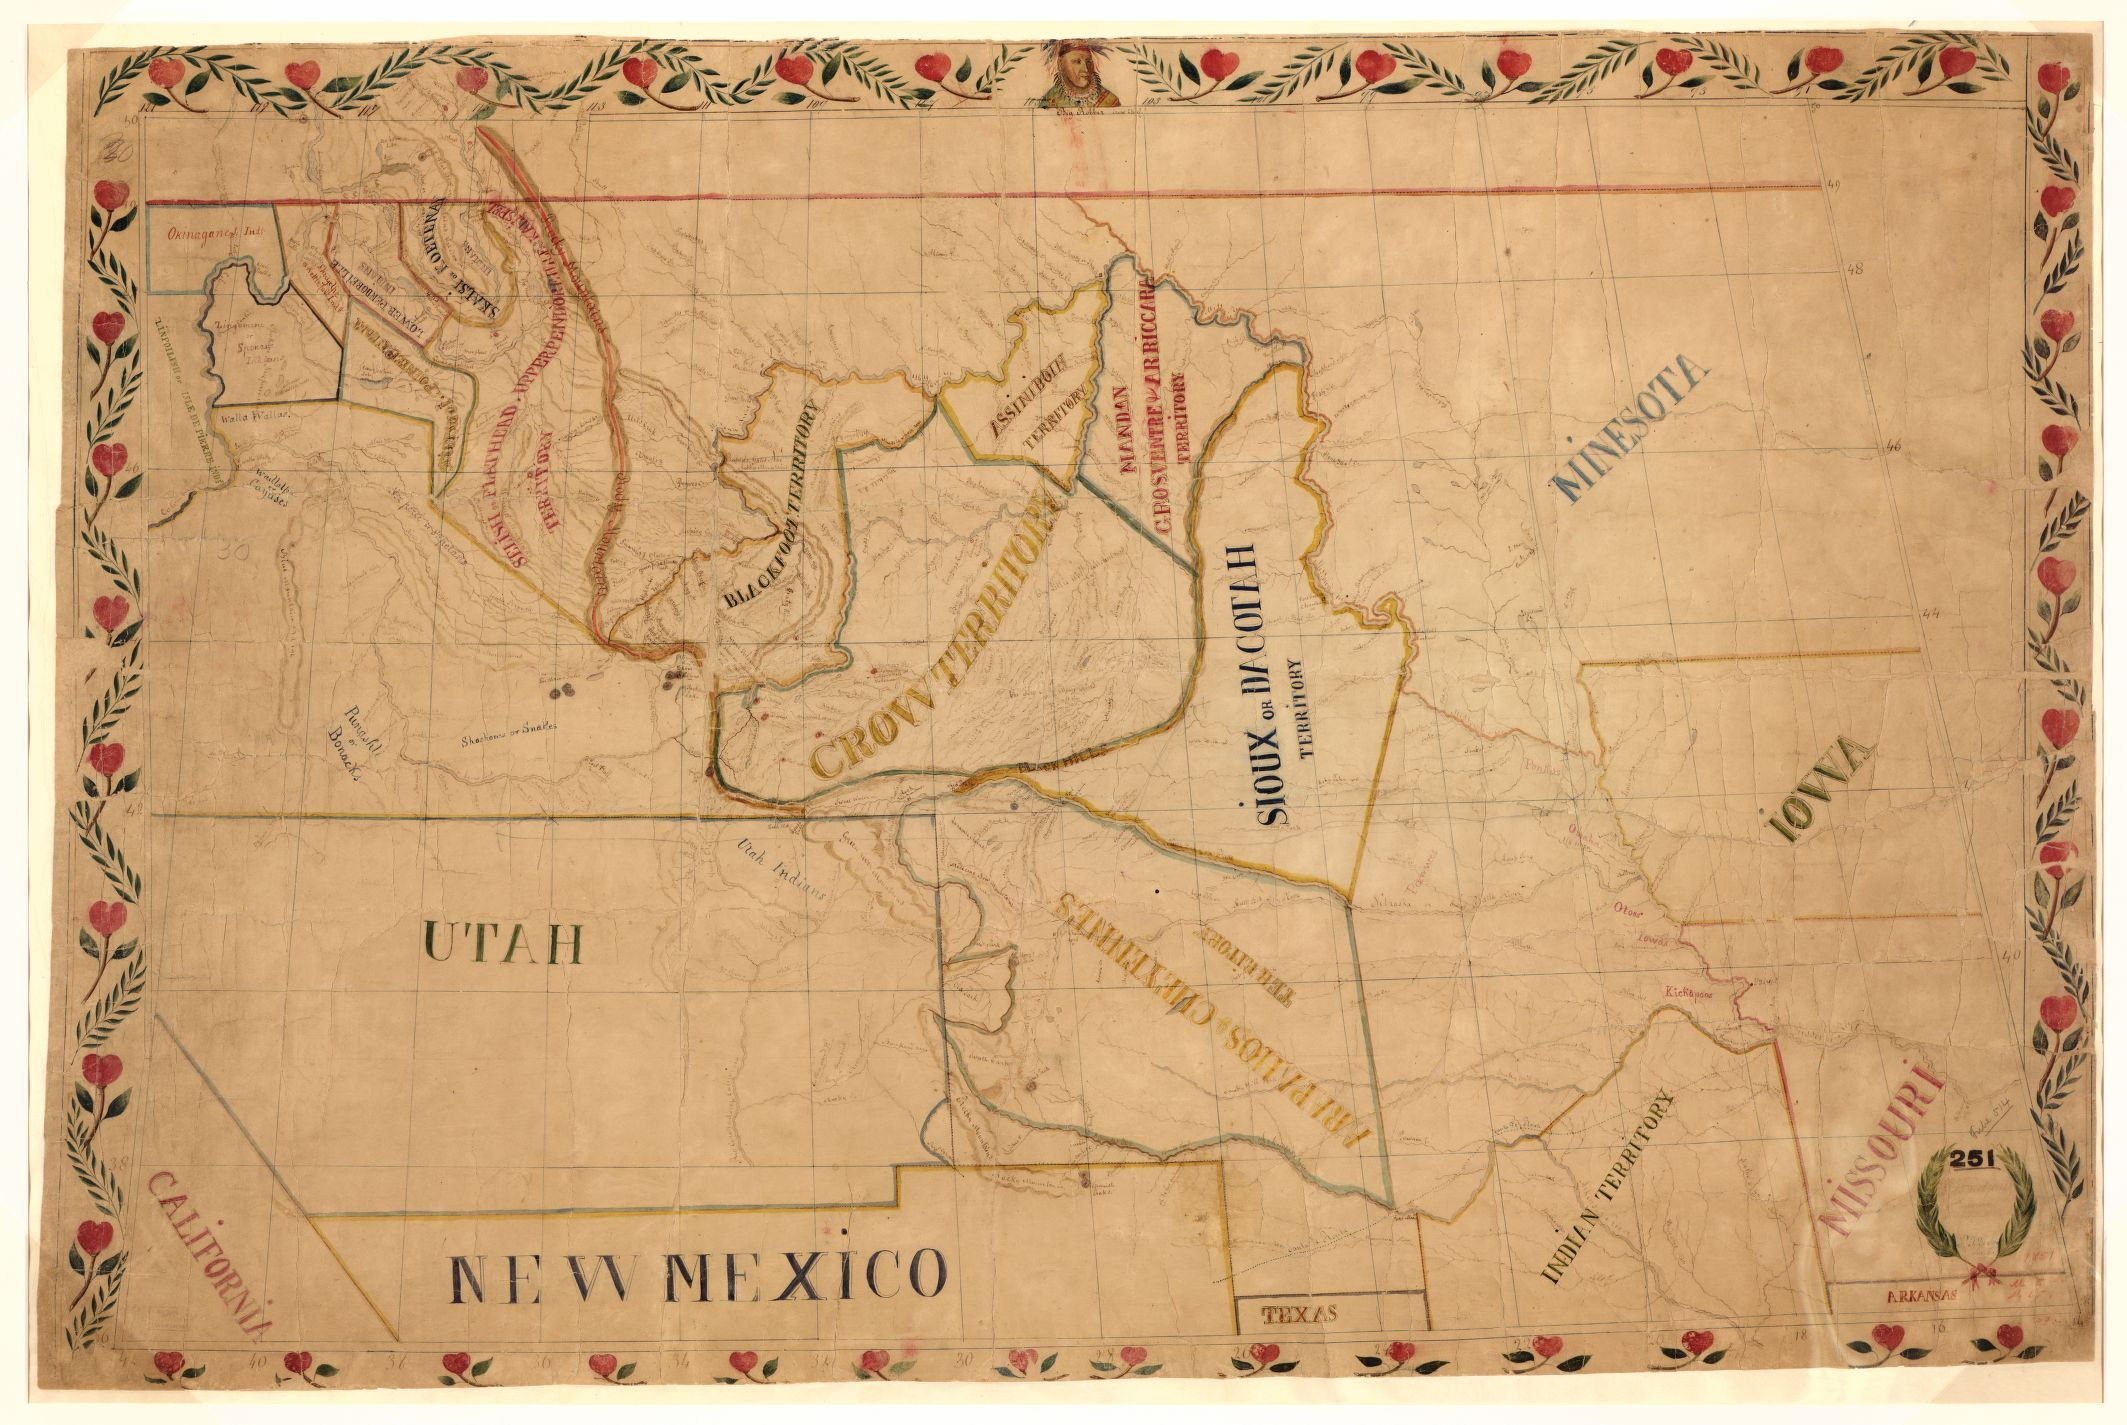 map drawn by father pierre jean de smet showing the de smet showing the territories claimed by the tribes of the upper great plains and rocky mountains on the occasion of the horse creek treaty